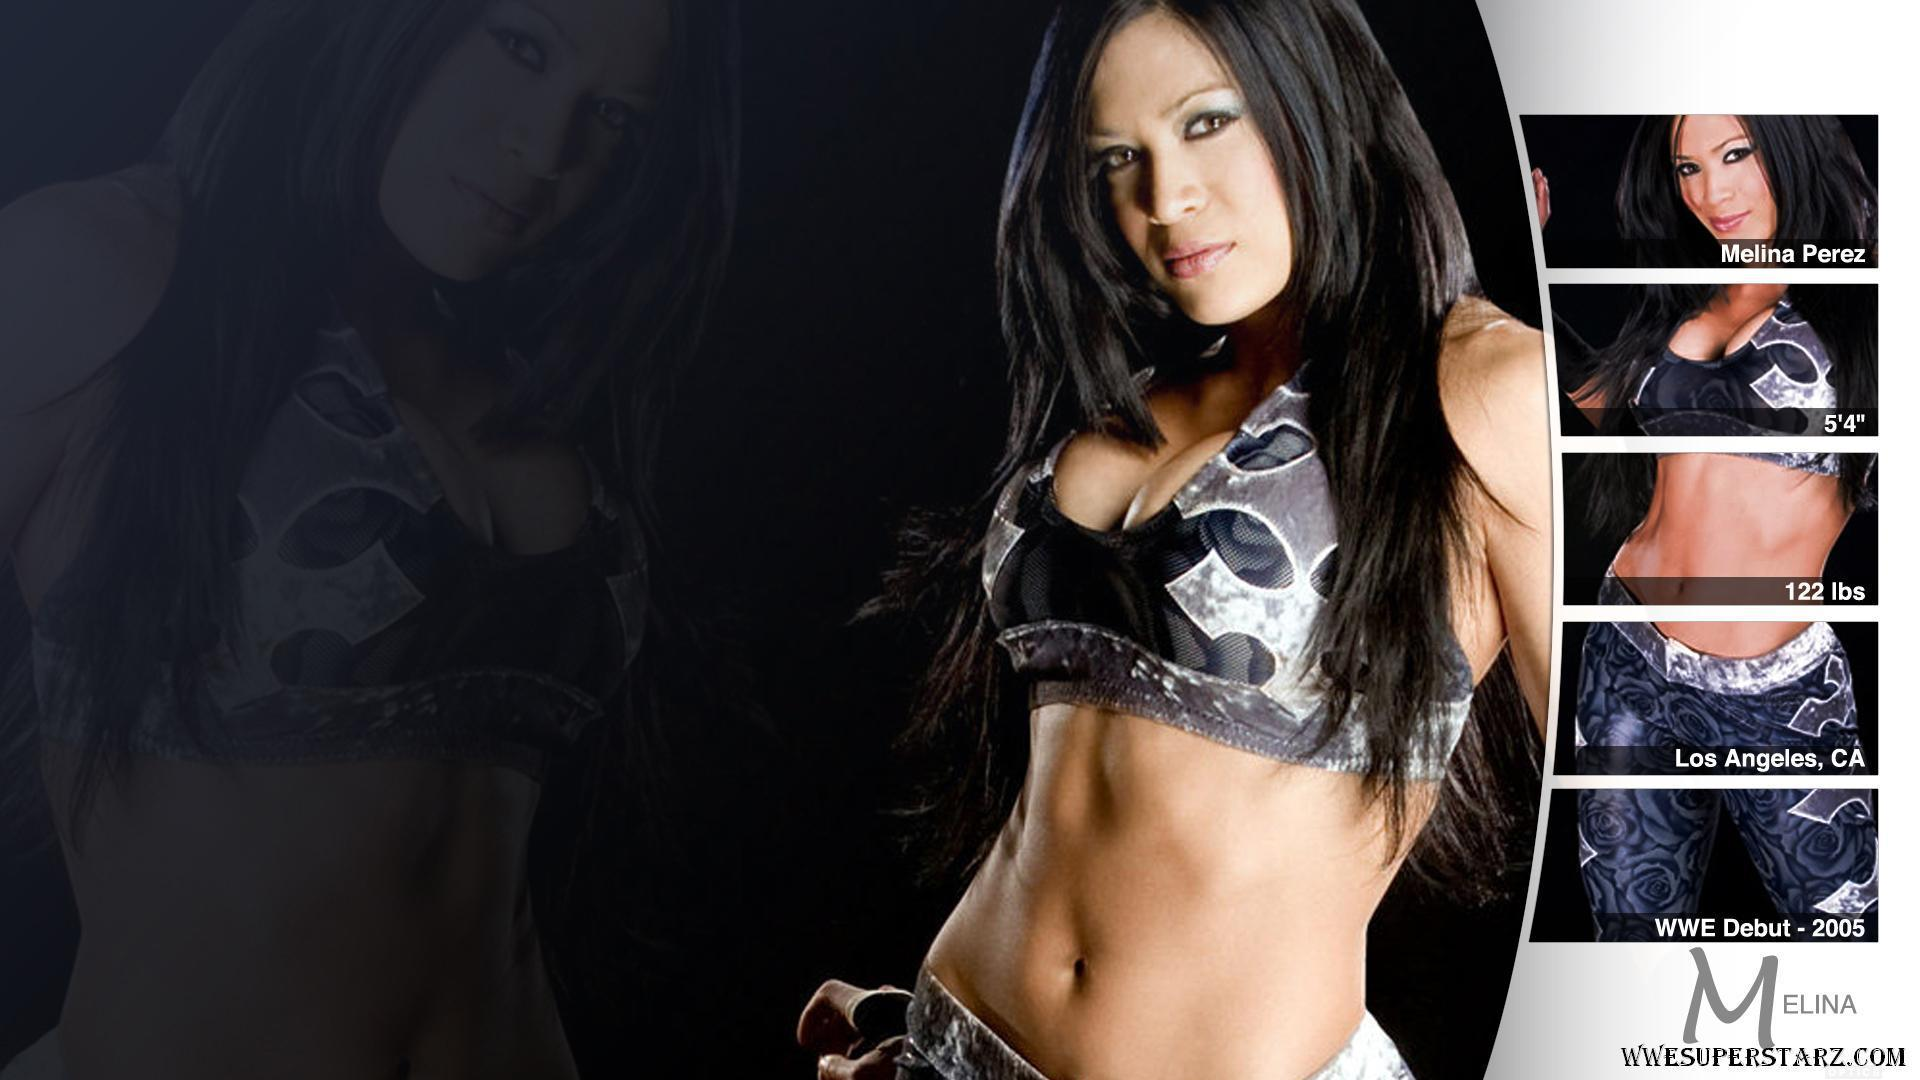 meLina - Melina Perez Wallpaper (16004062) - Fanpop fanclubs